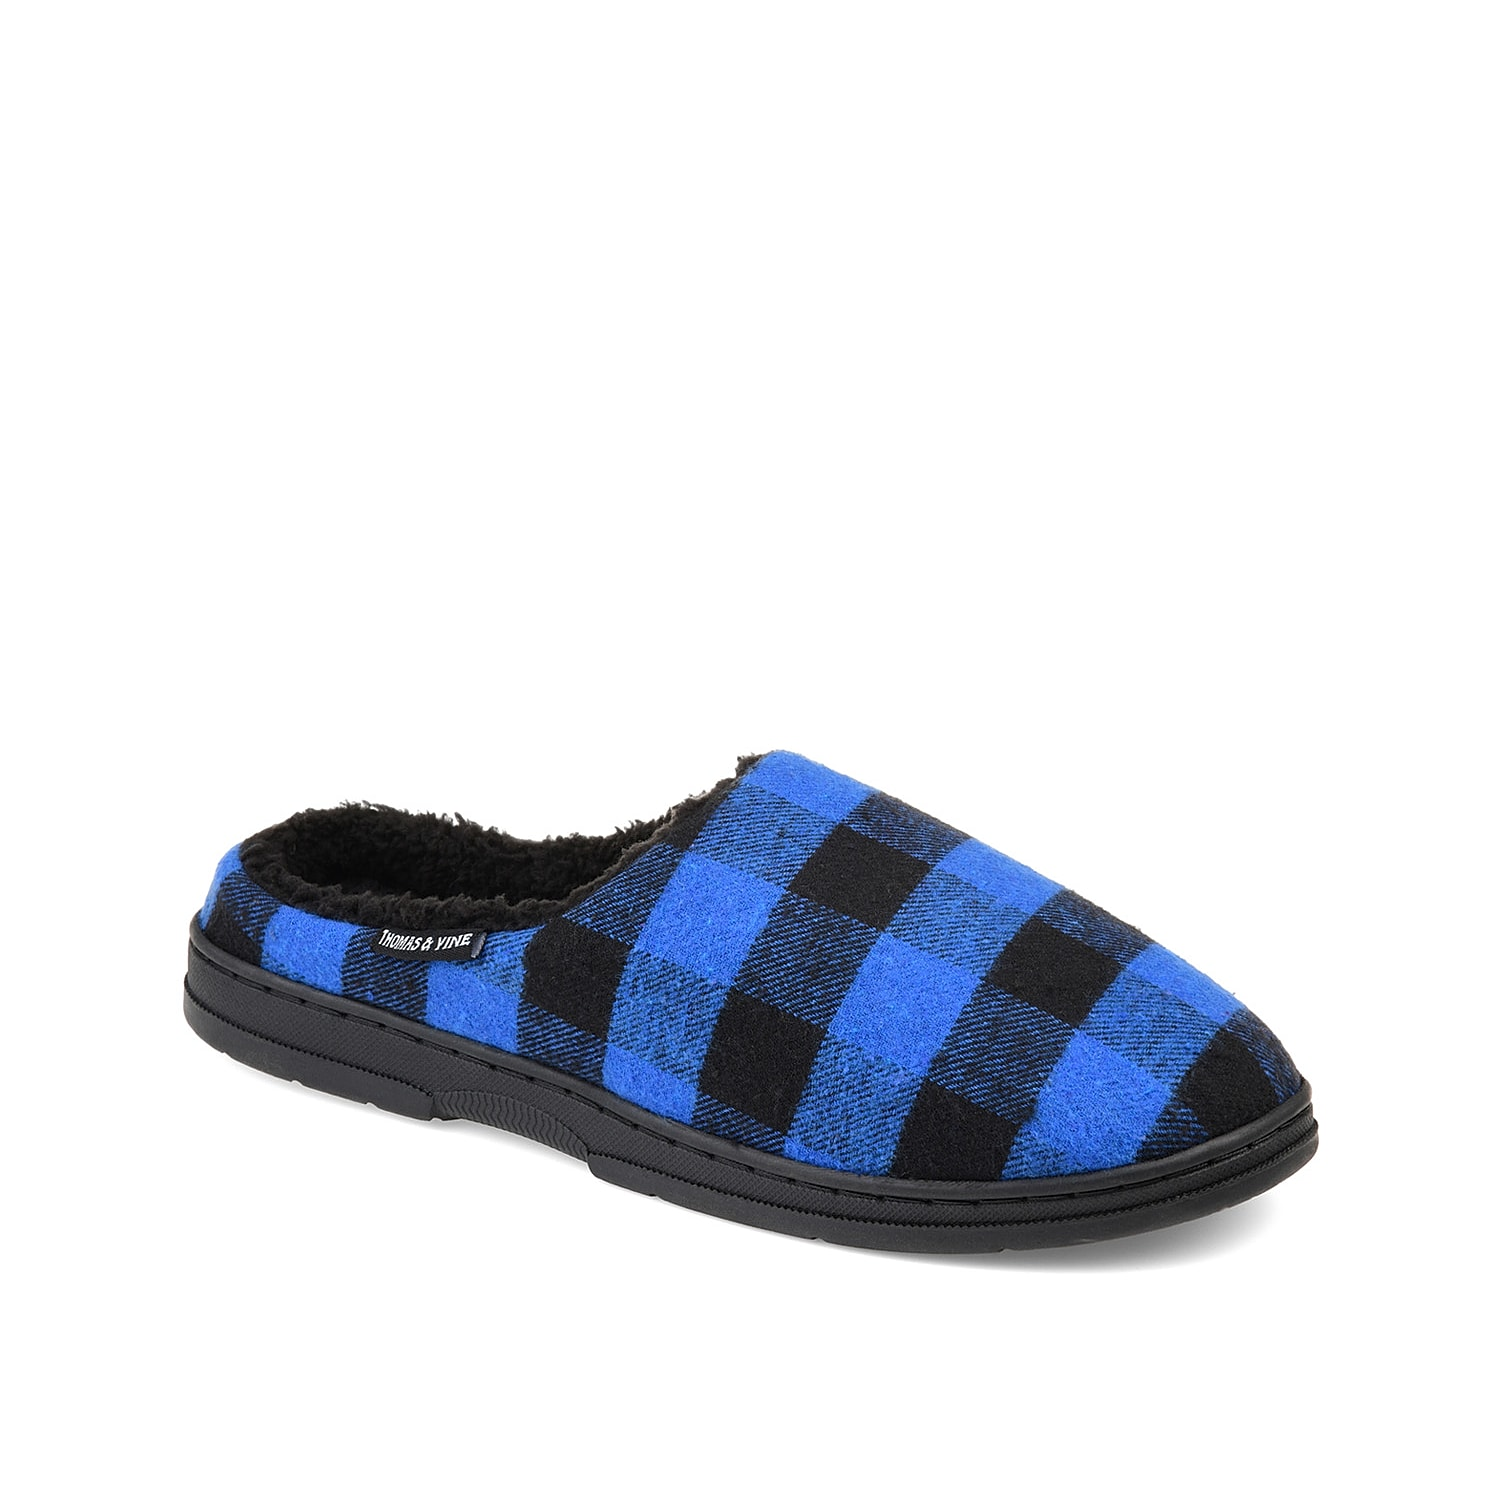 Enjoy the pamper that the Thomas & Vine Archer clog offers you all day. Highlighted with all-over plaid patterns, this clog has warm faux fur lining, cozy padded insole and durable rubber sole.